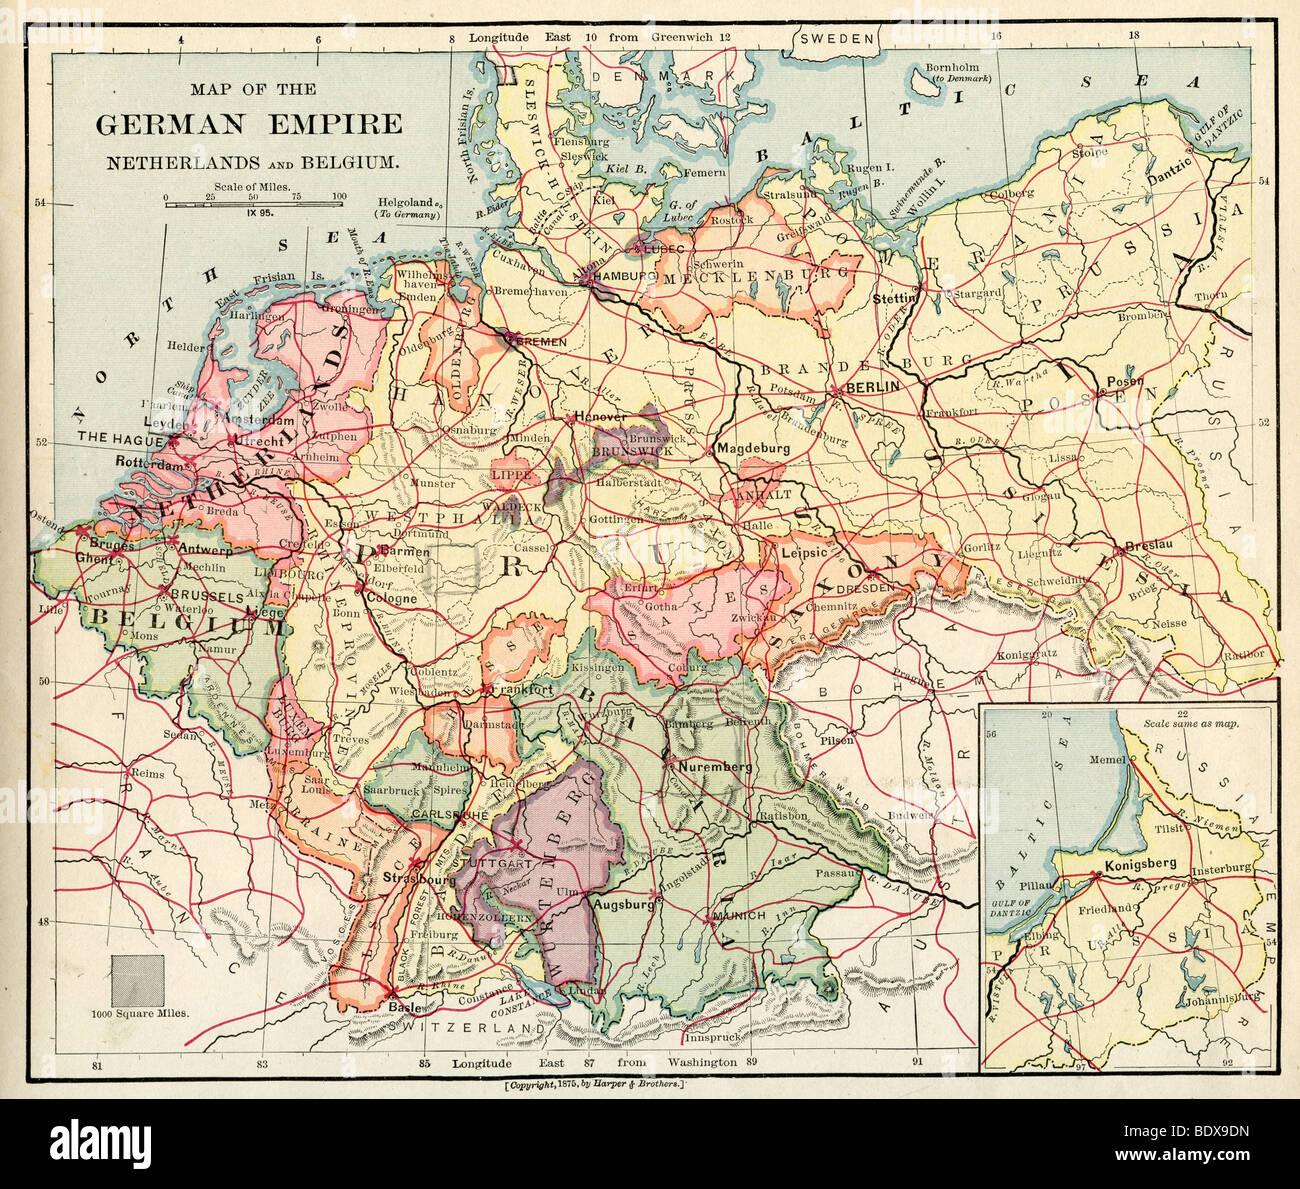 Map Of Old Germany.Original Old Map Of Germany From 1875 Geography Textbook Stock Photo